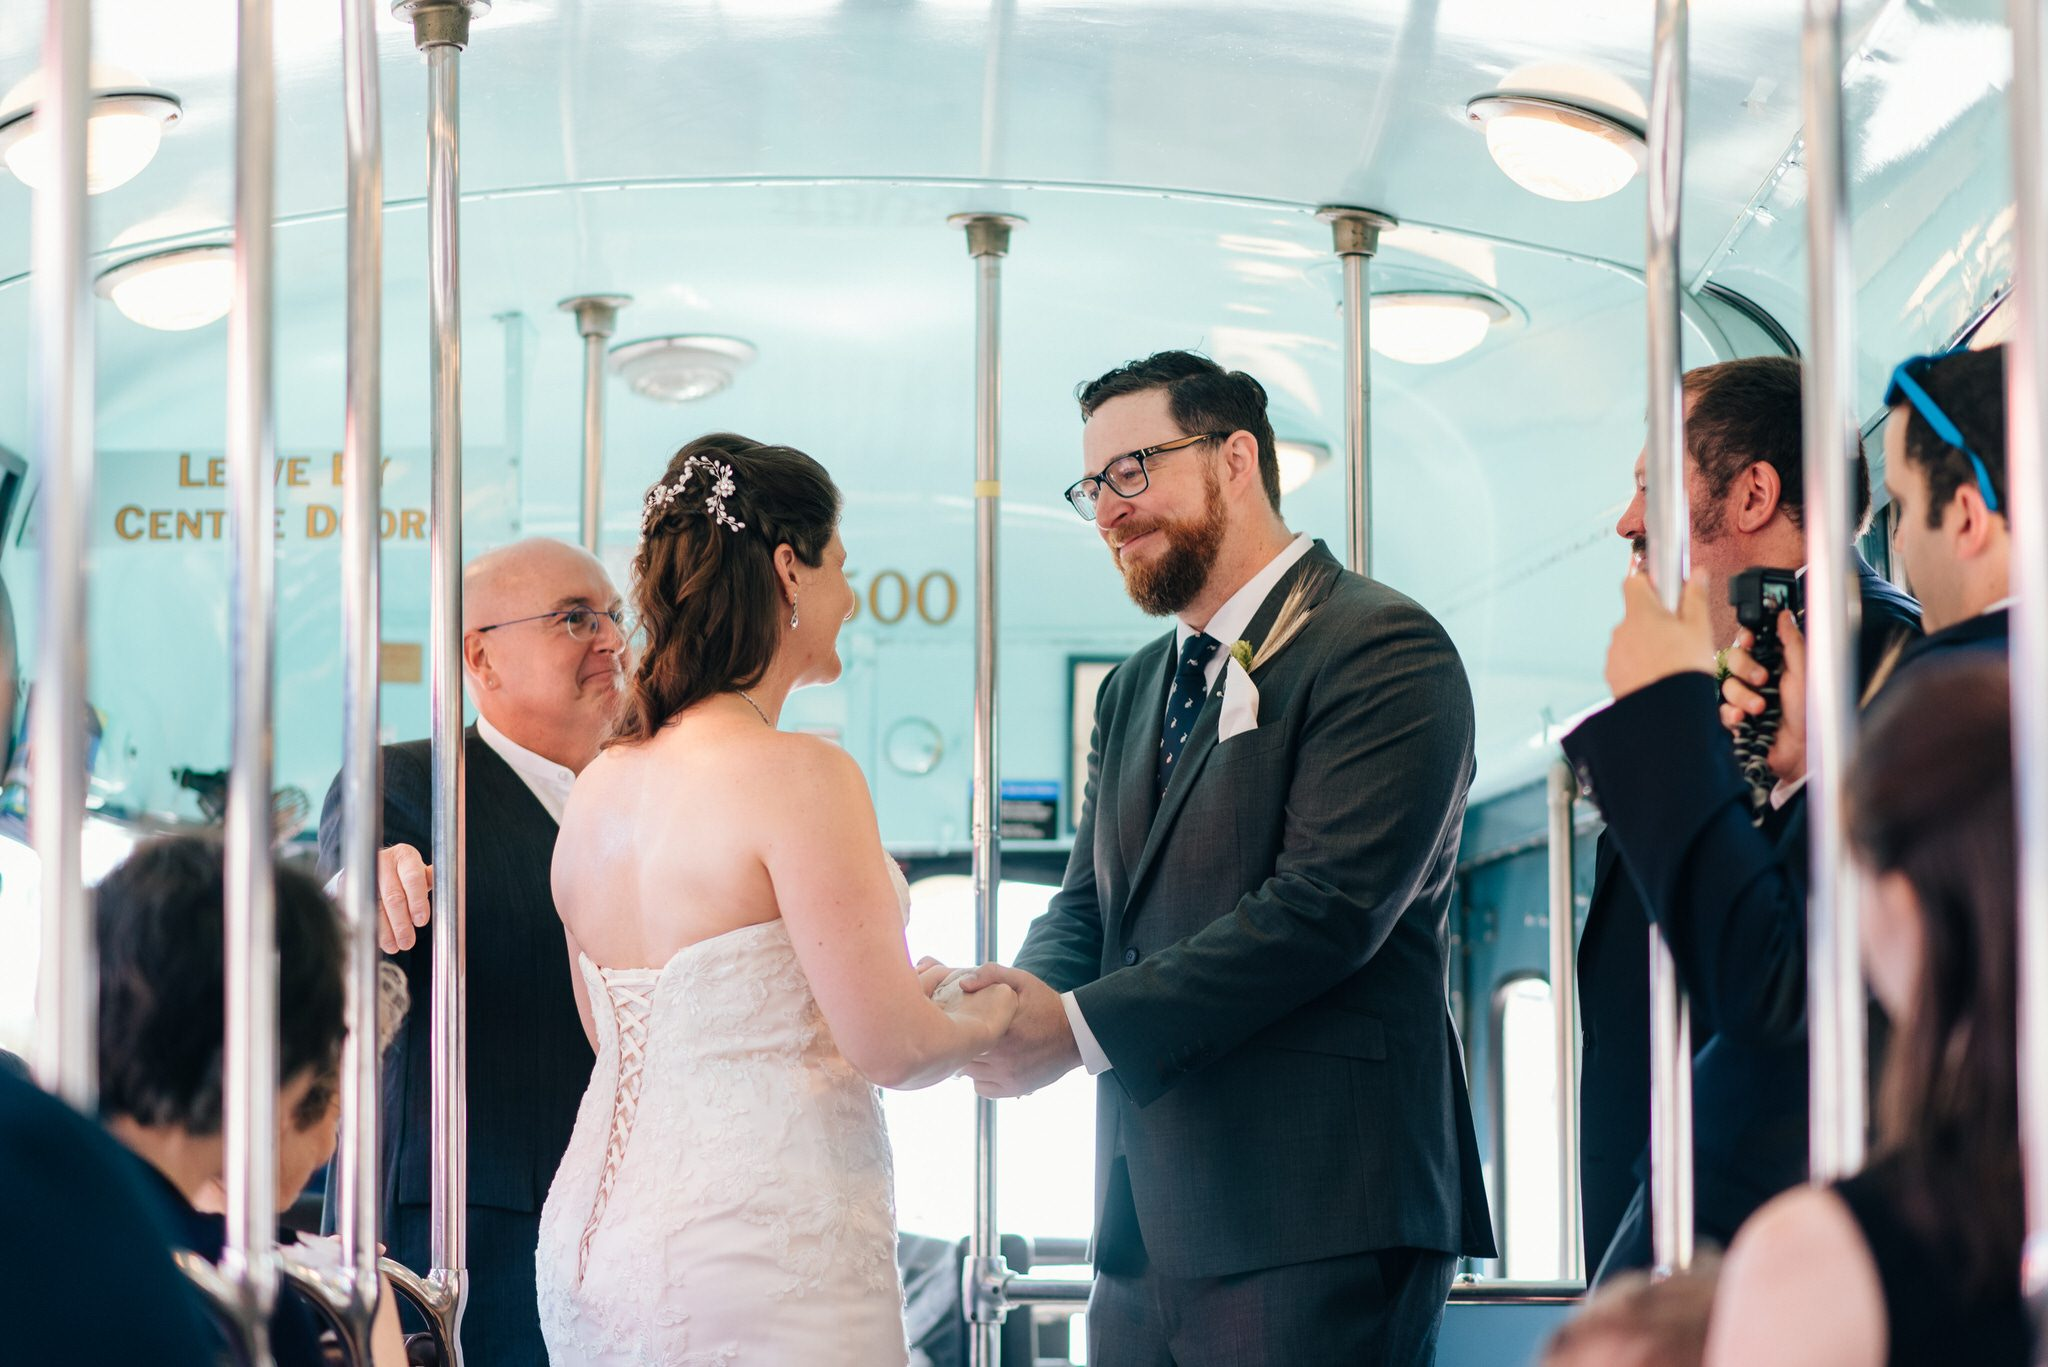 The couple hold hands during their Vintage Toronto Streetcar Wedding